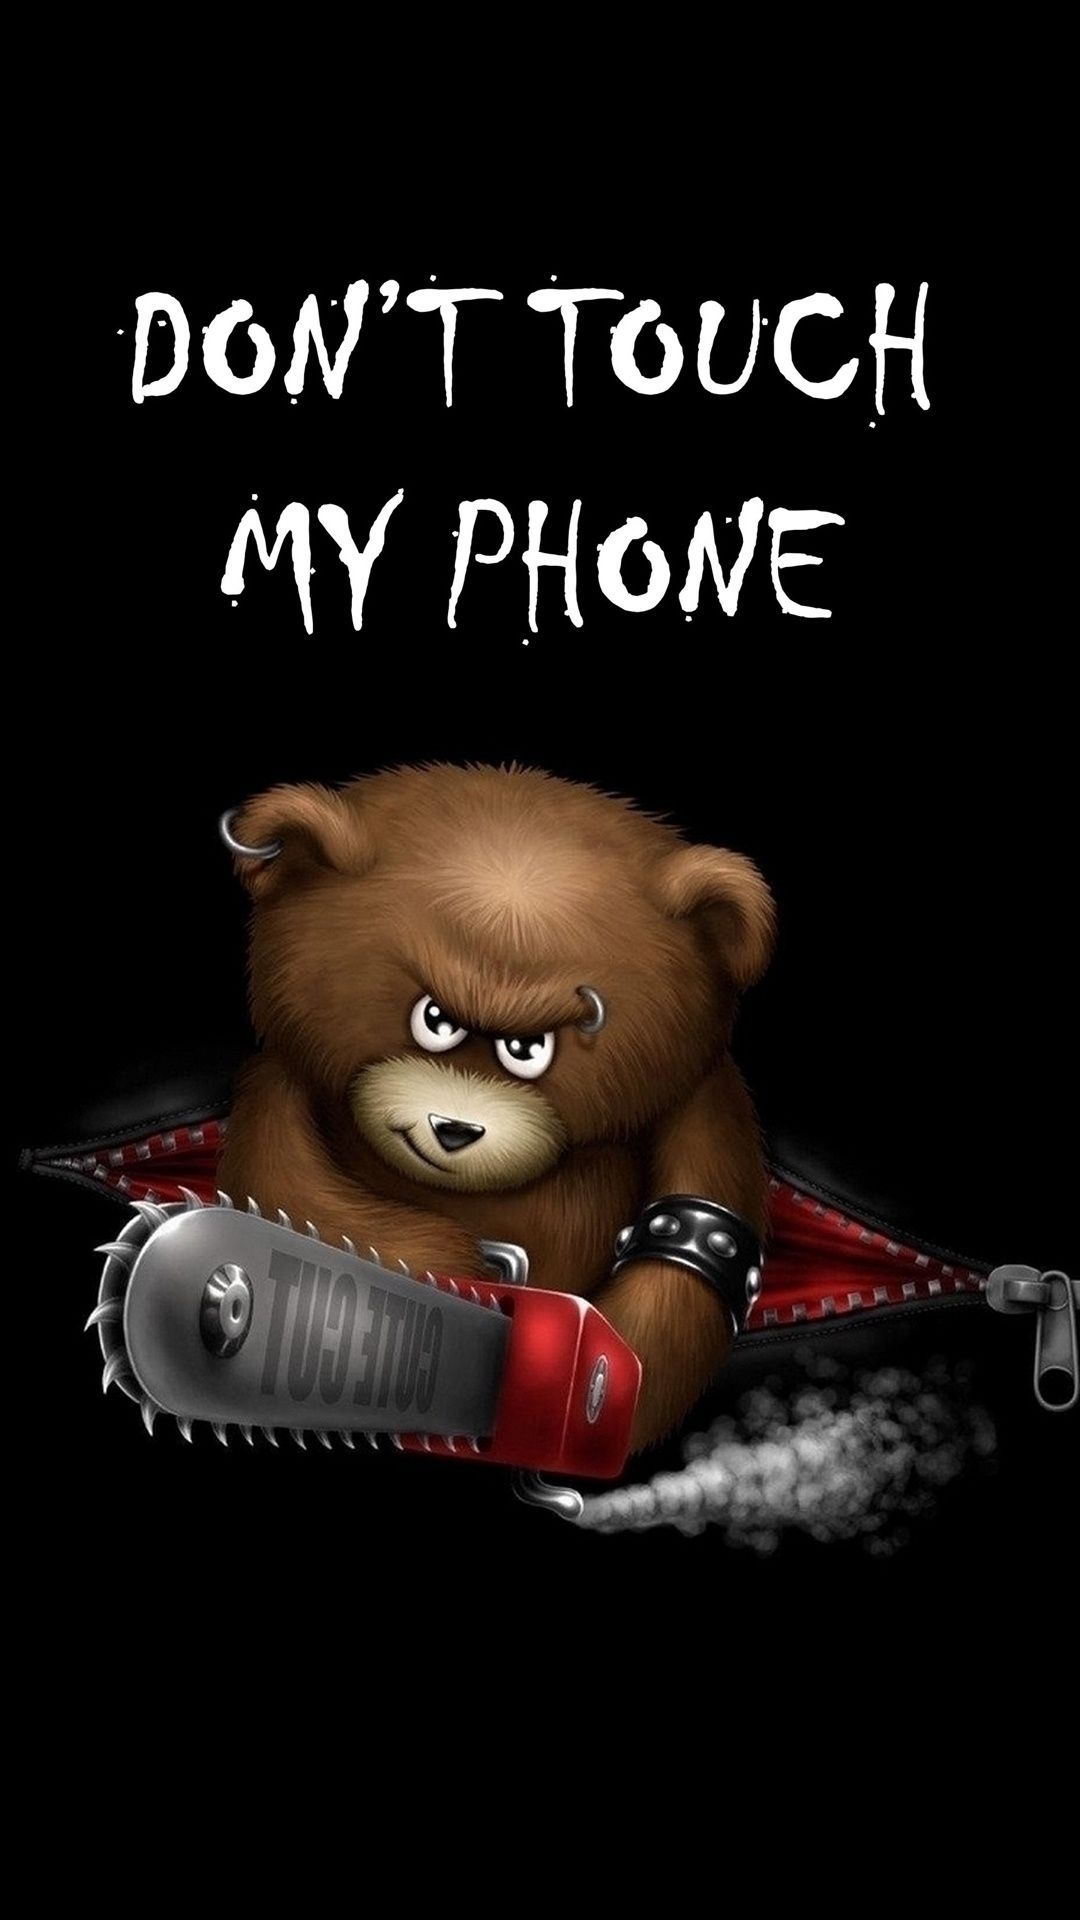 Teddy Bear Don T Touch My Phone 1080 X 1920 Wallpapers